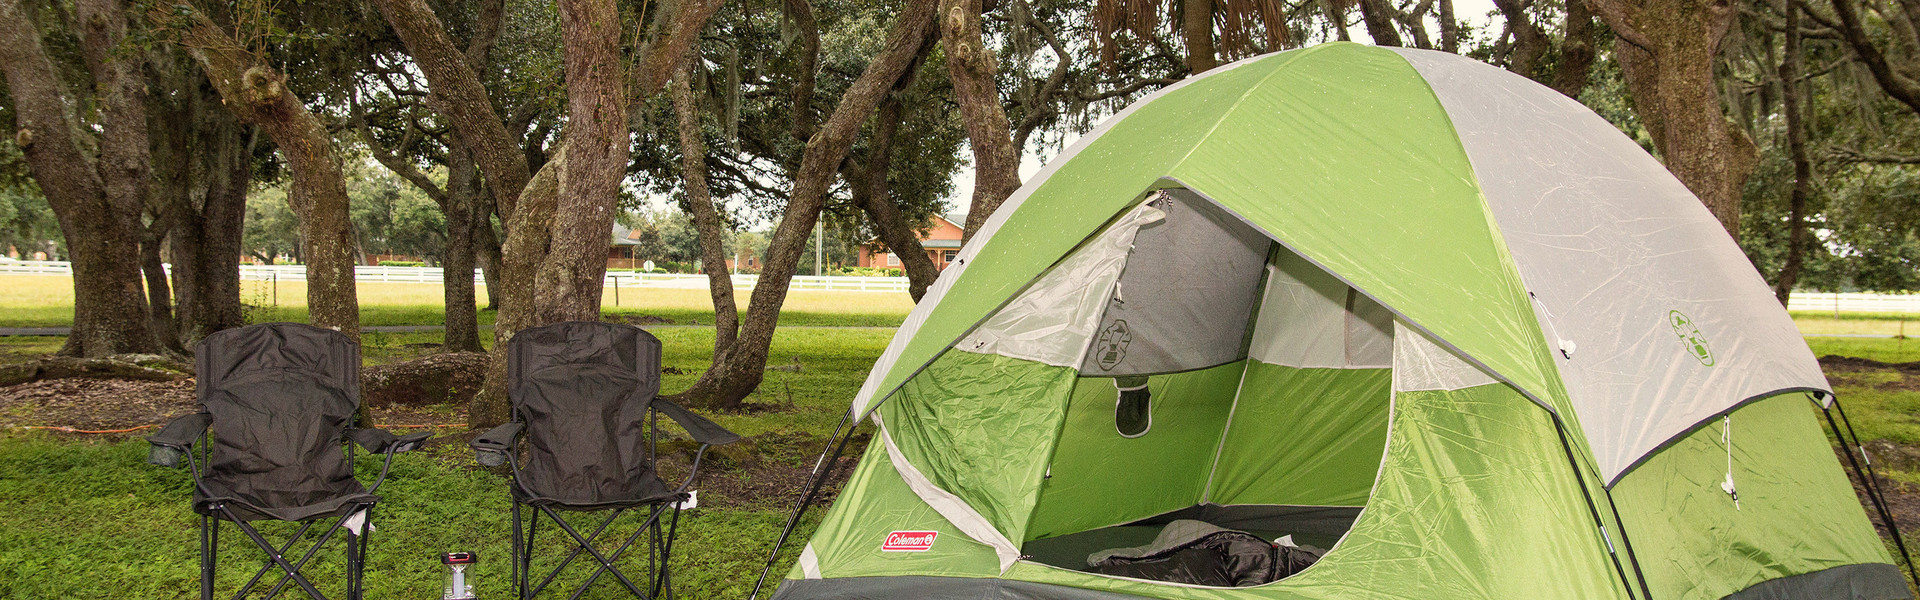 Tent Camping Westgate River Ranch Resort Amp Rodeo In